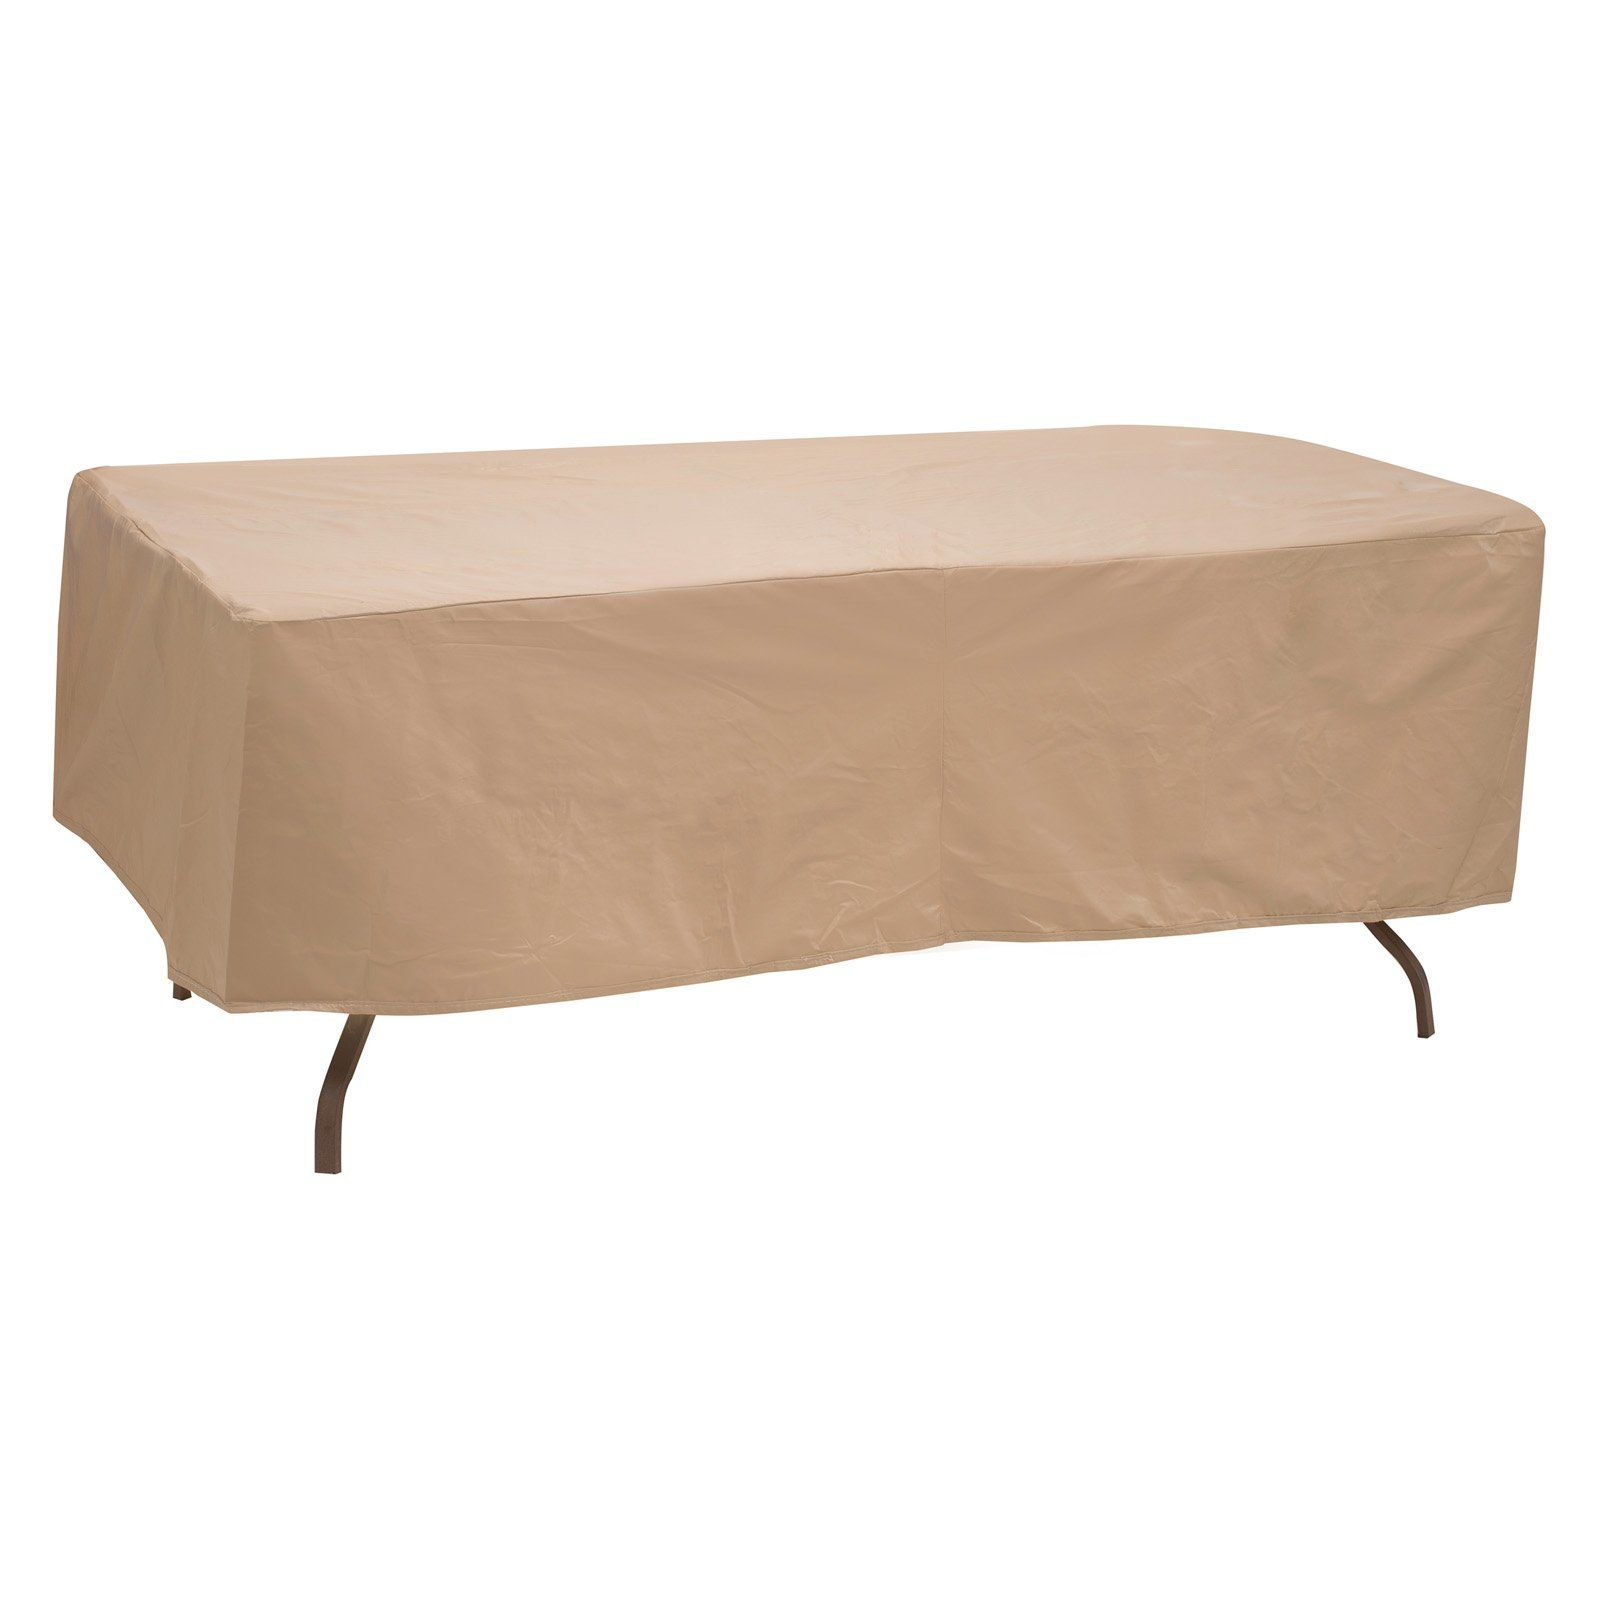 Pci By Adco Oval Rectangular Outdoor Table Cover 1152 Tn